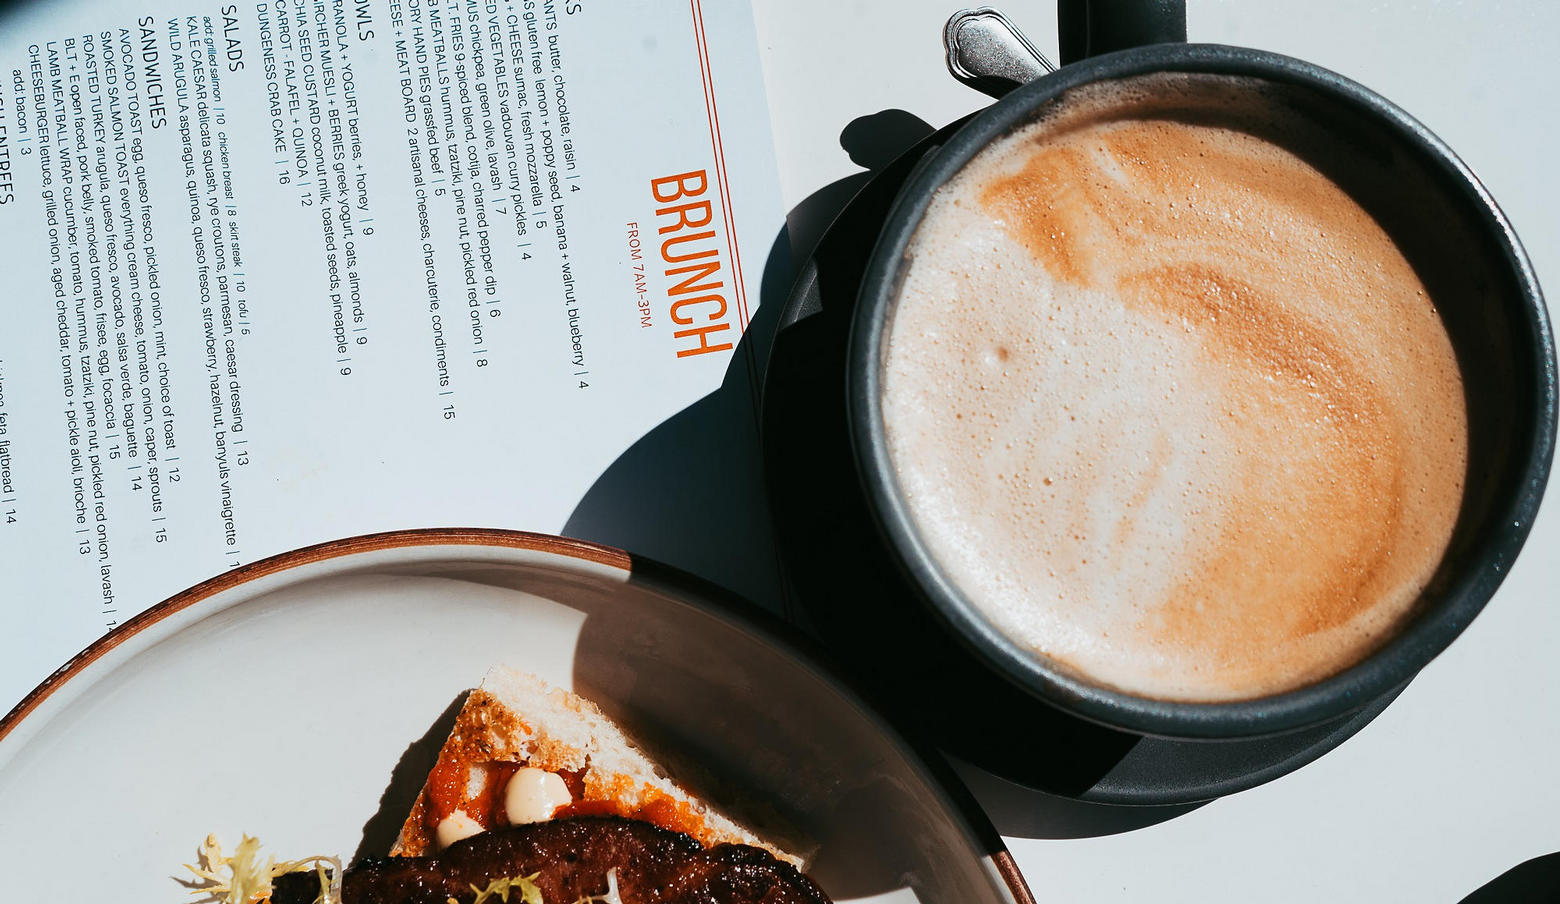 Brunch Menu and Latte